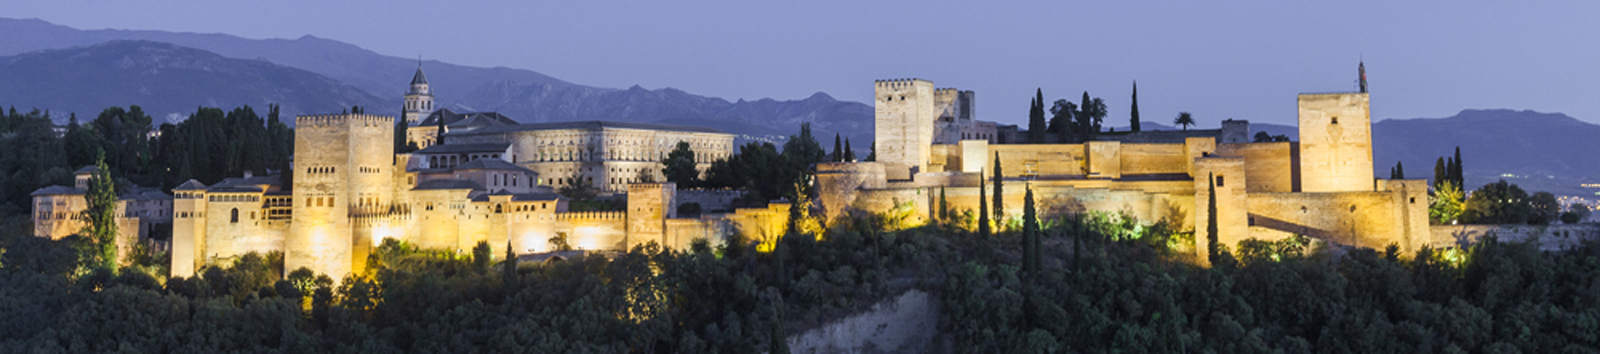 spain-luxury-travel-incoming-dmc-concierge-andalusia-granada-alhambra-night-top-1